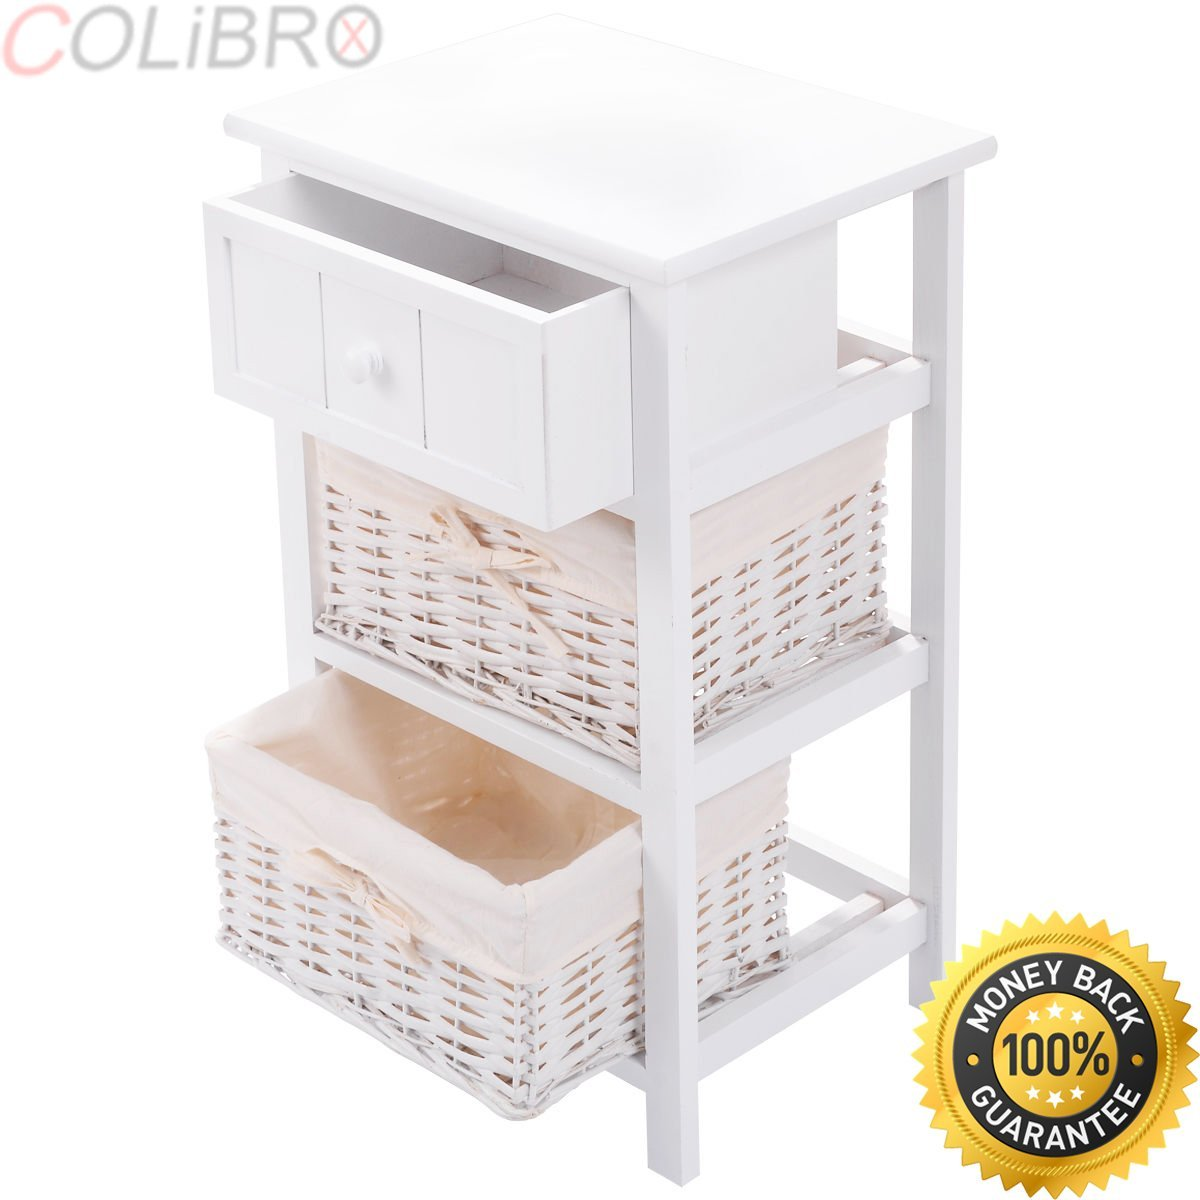 COLIBROX--2 PCS Night Stand 3 Layer 1 Drawer Bedside End Table Organizer Bedroom Wood New․ night stand 3 layer 1 drawer bedside end table organizer bedroom wood w 2 basket․curved nightstand end table․